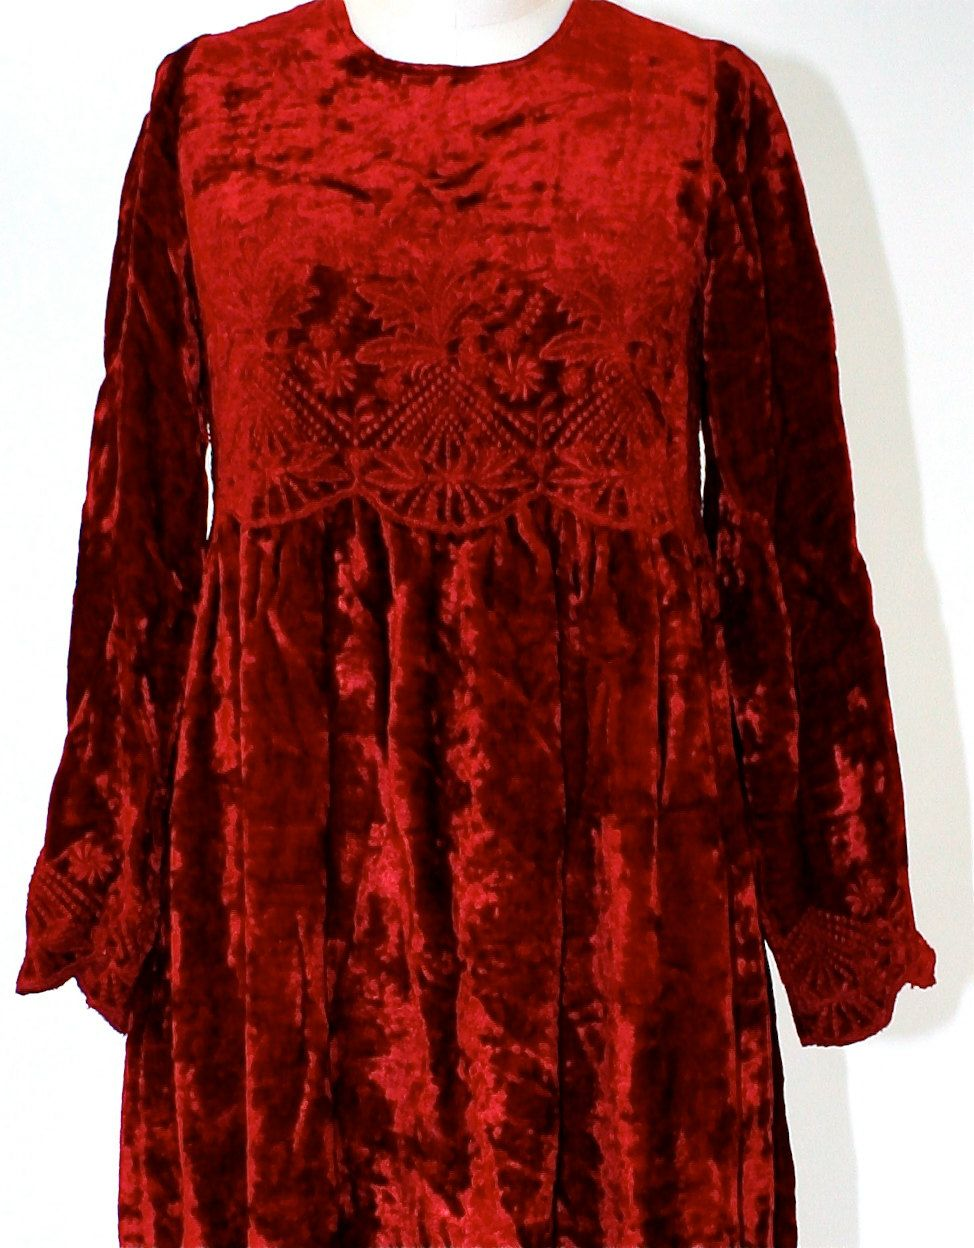 Crushed red velvet s long sleeved dress with embroidery small